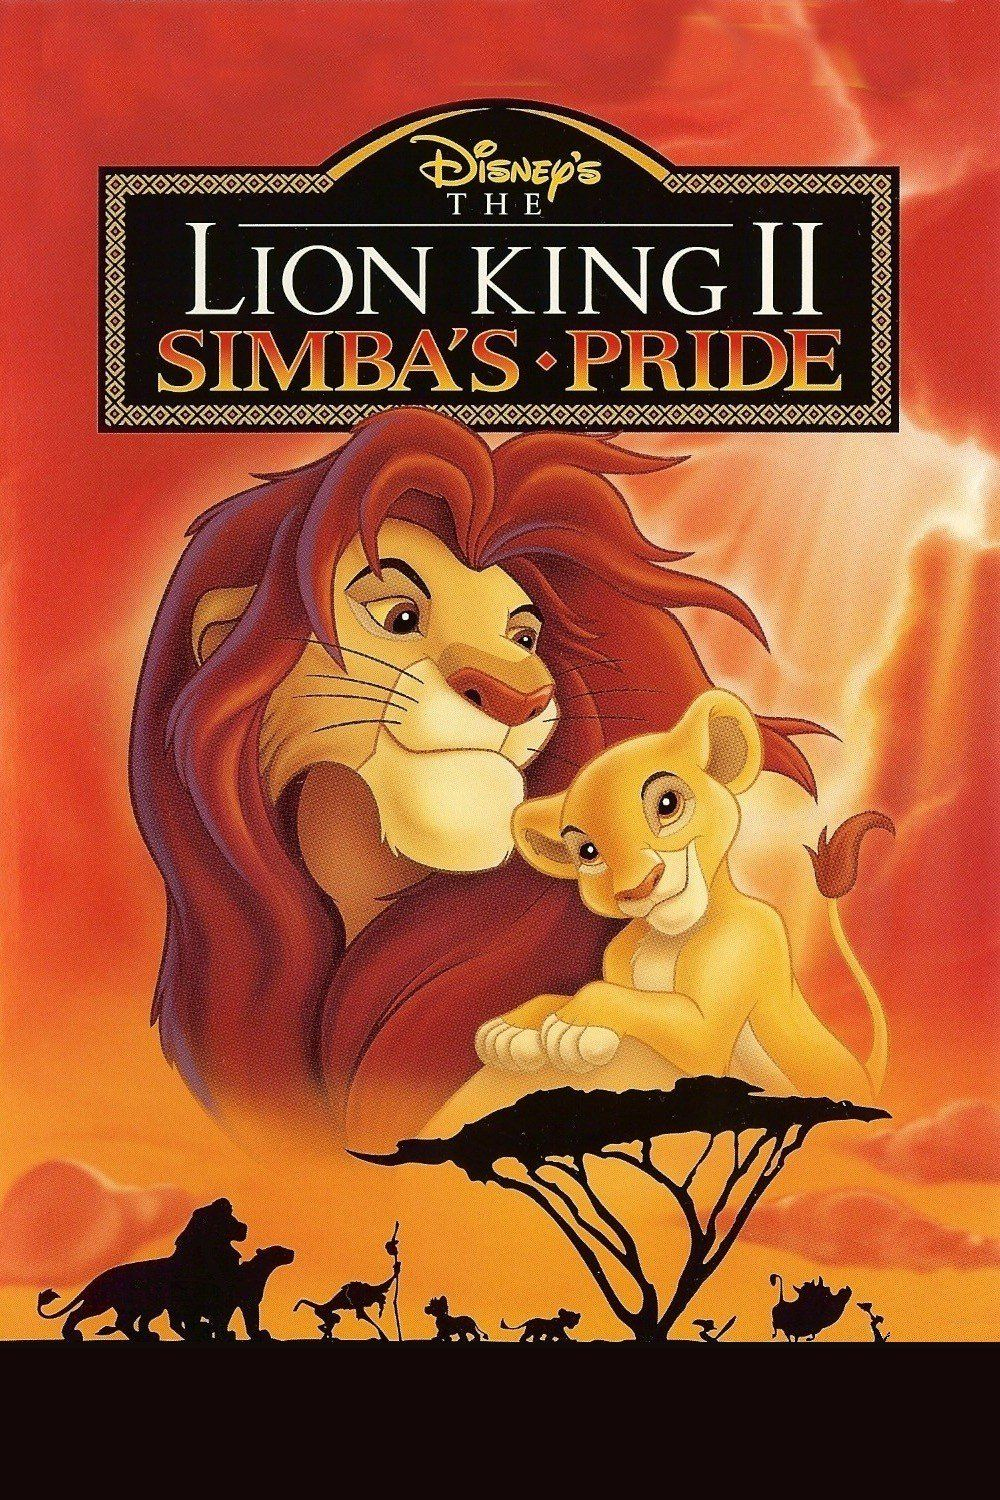 the lion king poster part 2 simbas